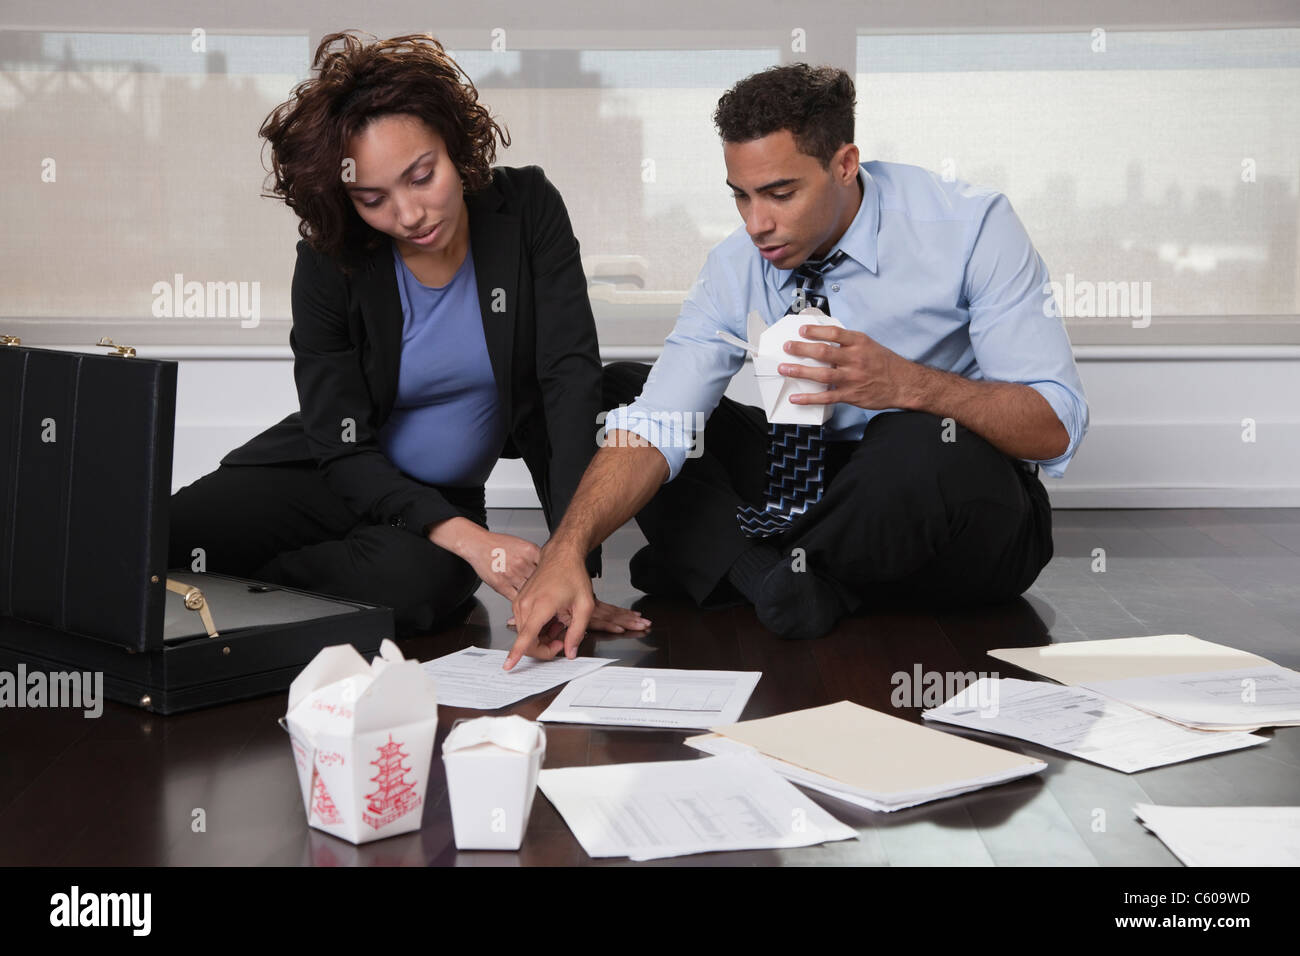 USA, New York City, businesspeople sitting on floor, discussing documents and eating Chinese take out food - Stock Image